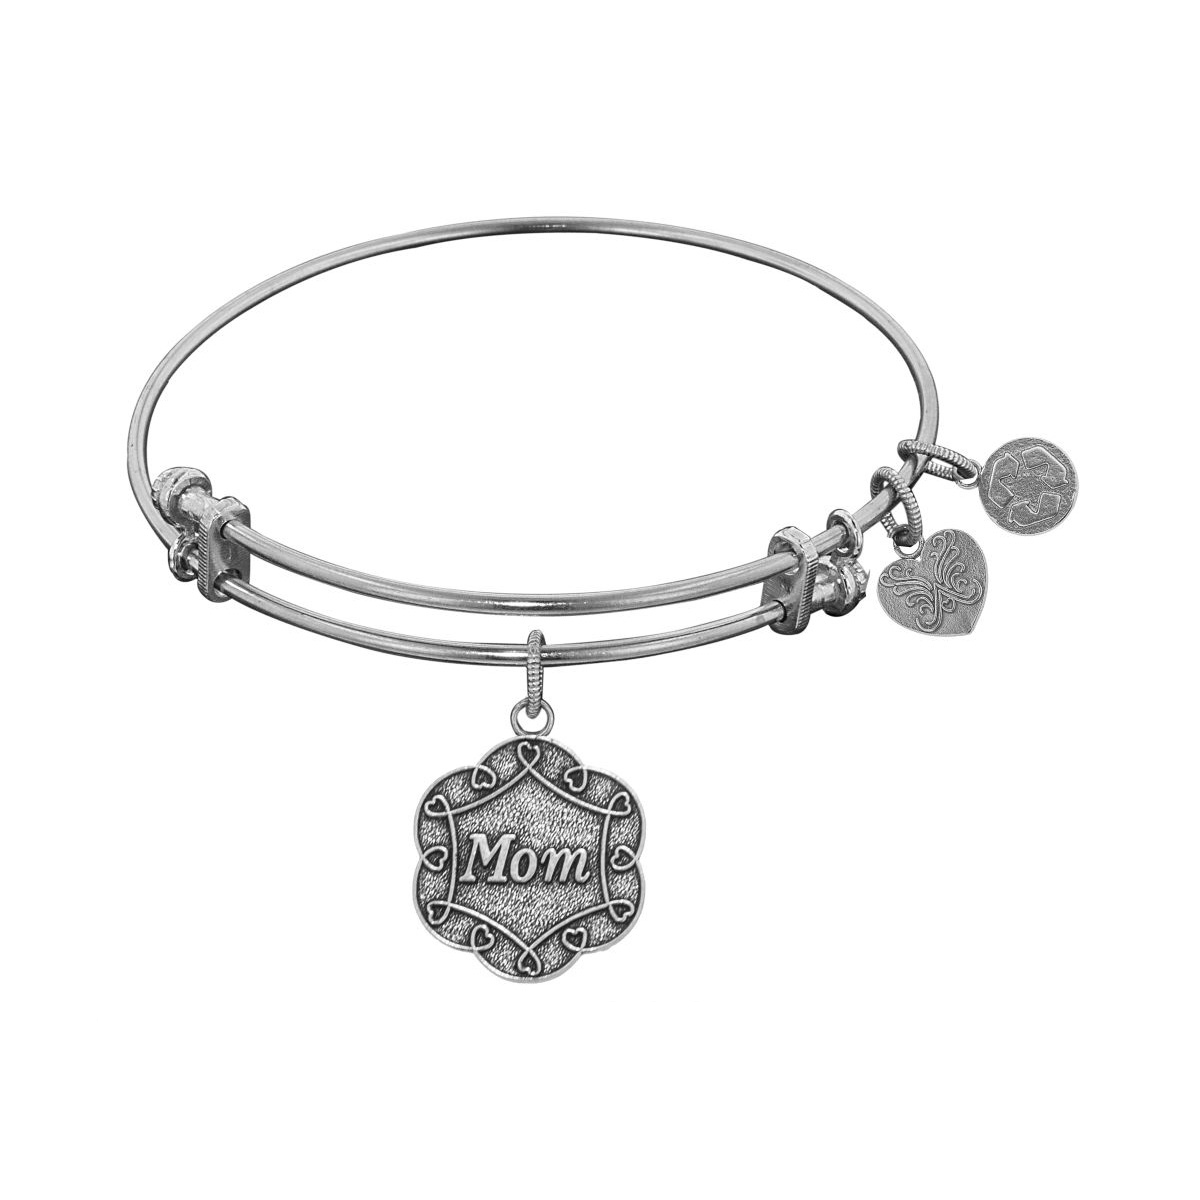 White Stipple Finish Brass Mom On 7 Leaf Flower Like Charm Angelica Bangle Bracelet, 7.25″